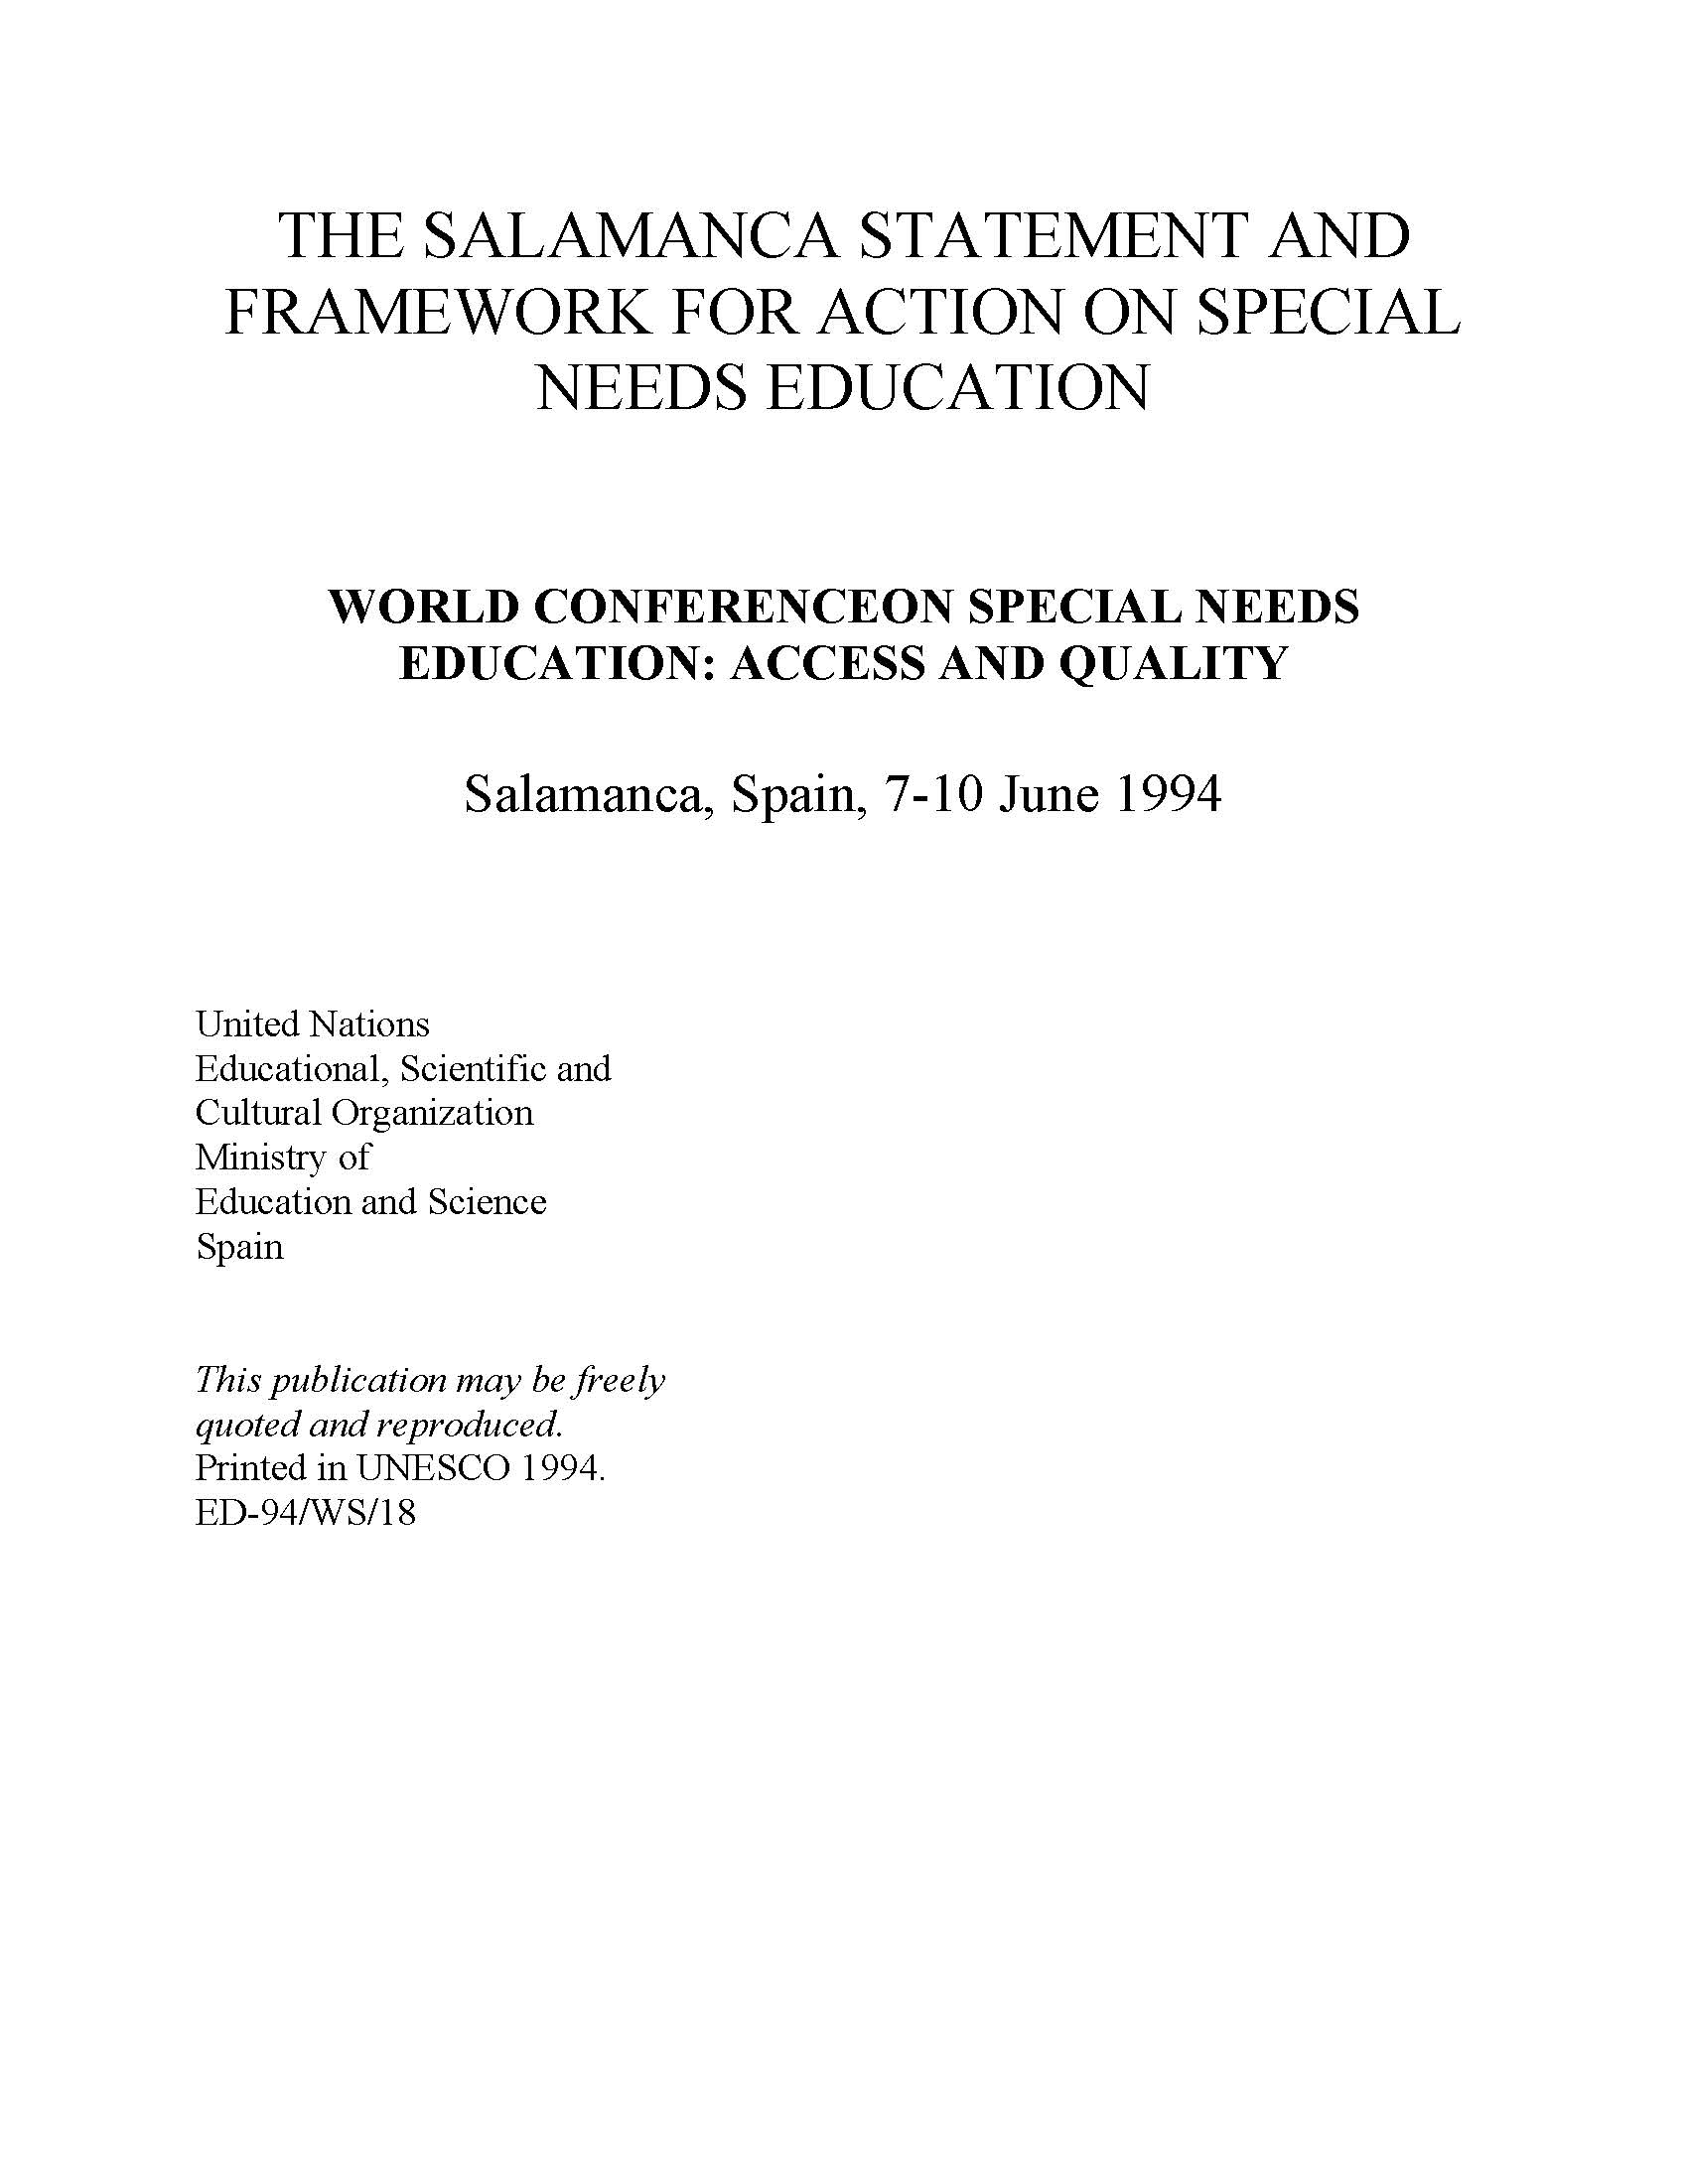 The Salamanca statement and framework for action on special needs education